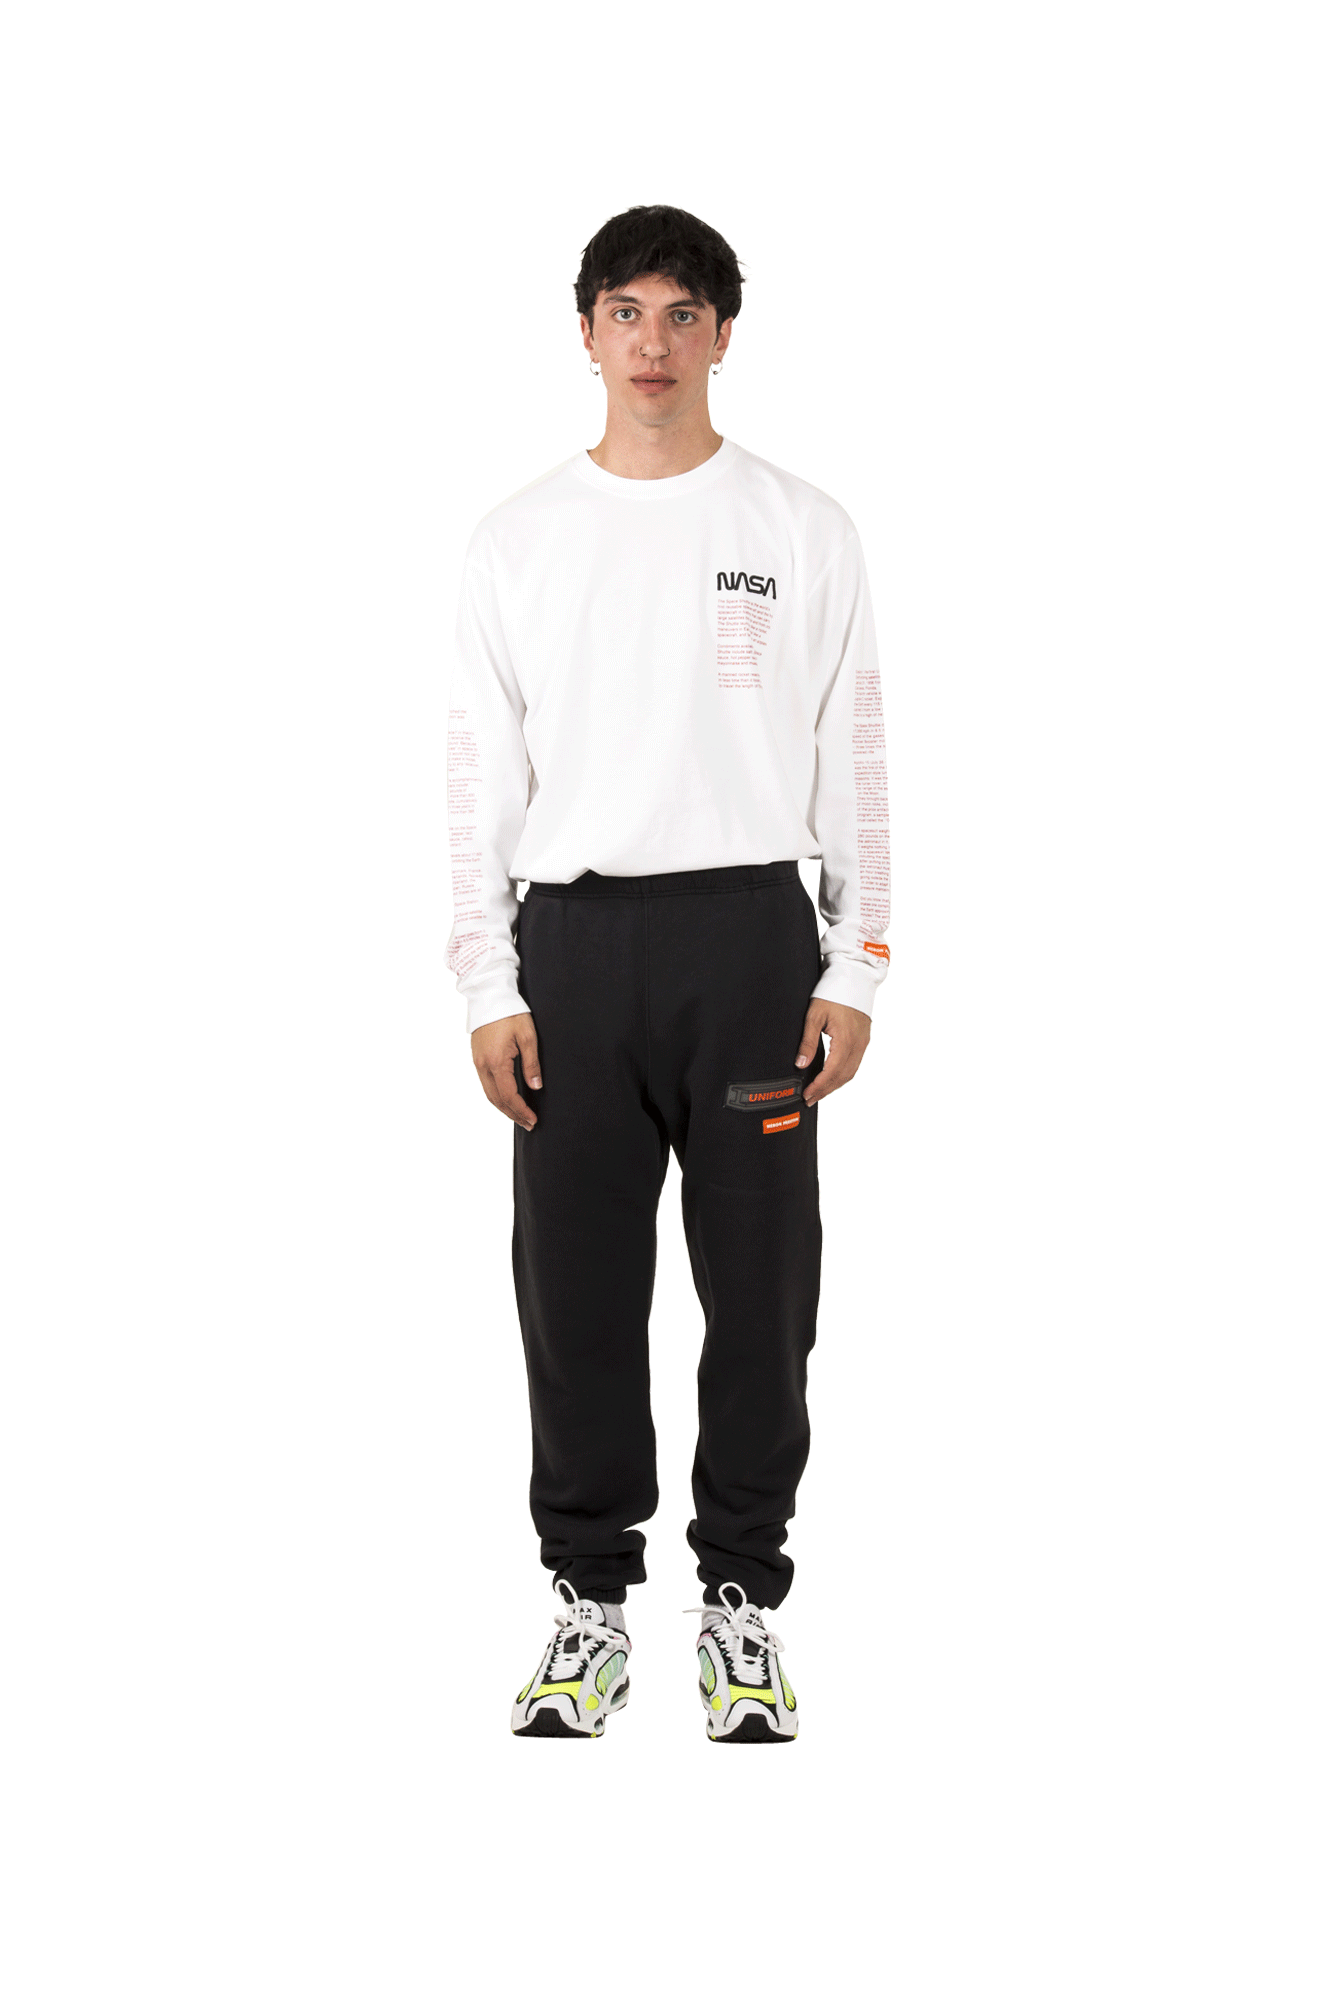 Heron Preston Sweatpants Slim Sweatpants Uniform Black HMCH005F19#808013-#0488#S - One Block Down